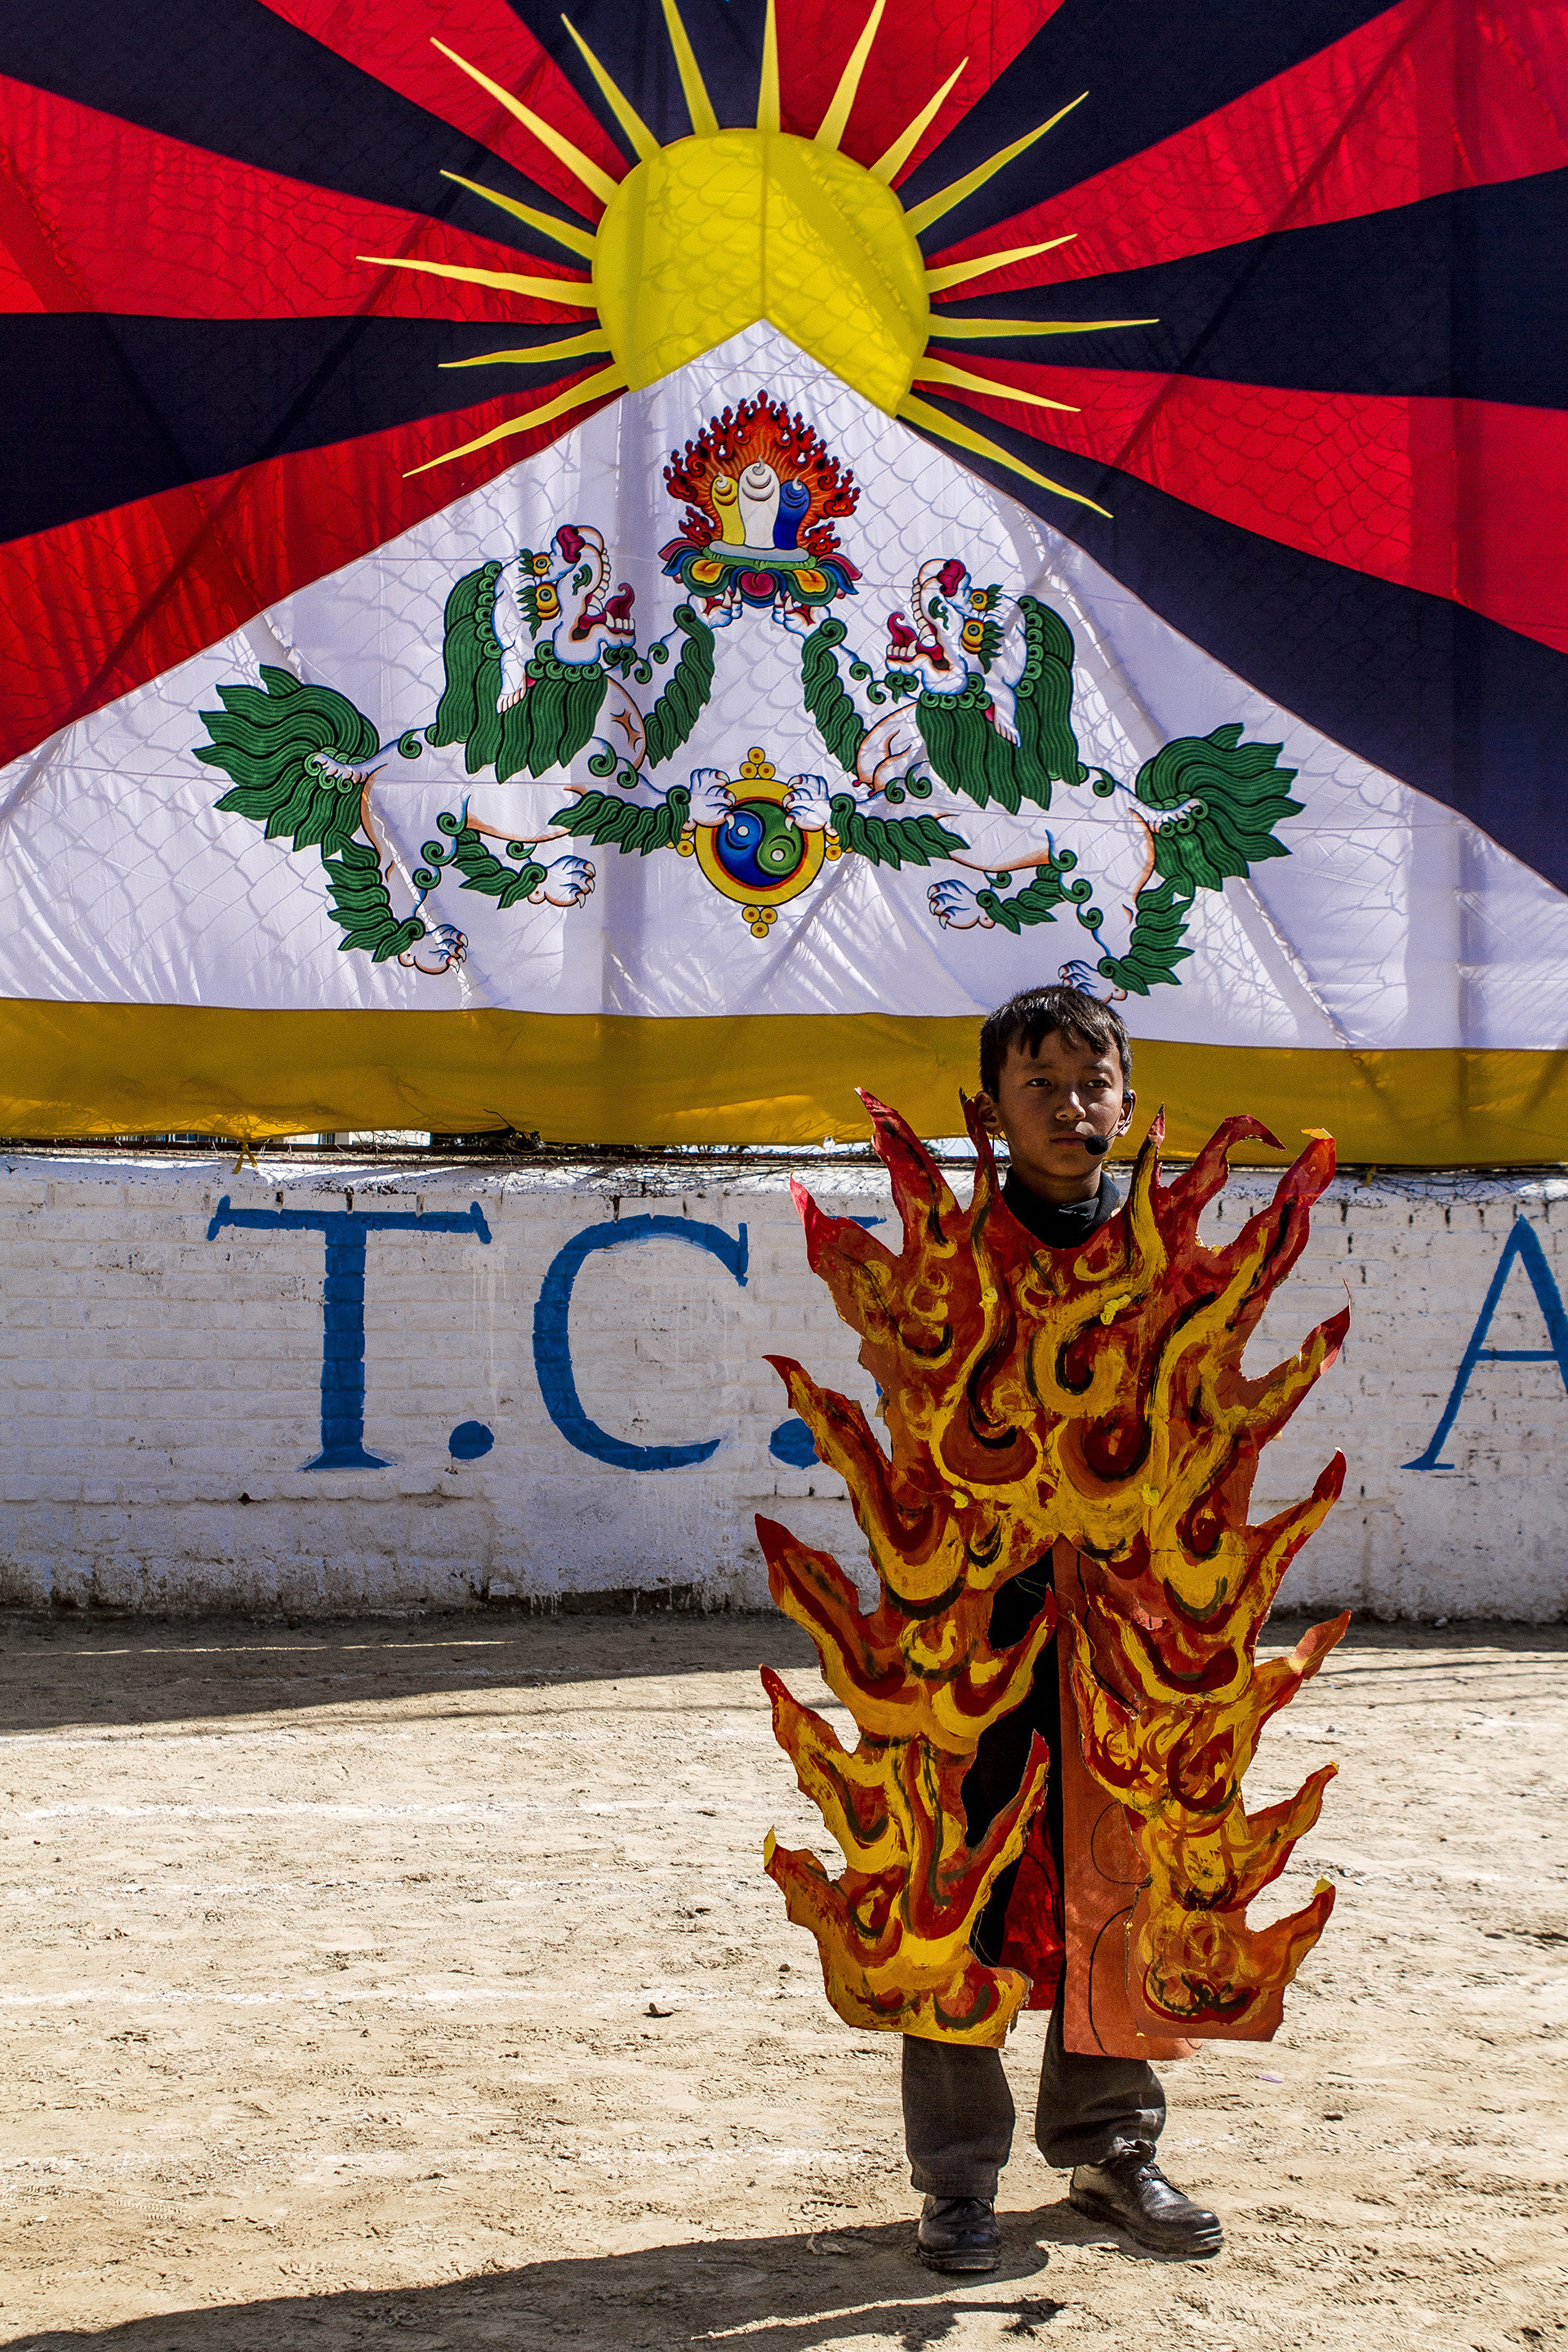 10 October, 2012 - Tibetan Children's Village School, McLeod Ganj   A young Tibetan student dressed as a self-immolating 'martyr' awaits his turn in a school performance which recounts the Chinese occupation of Tibet.